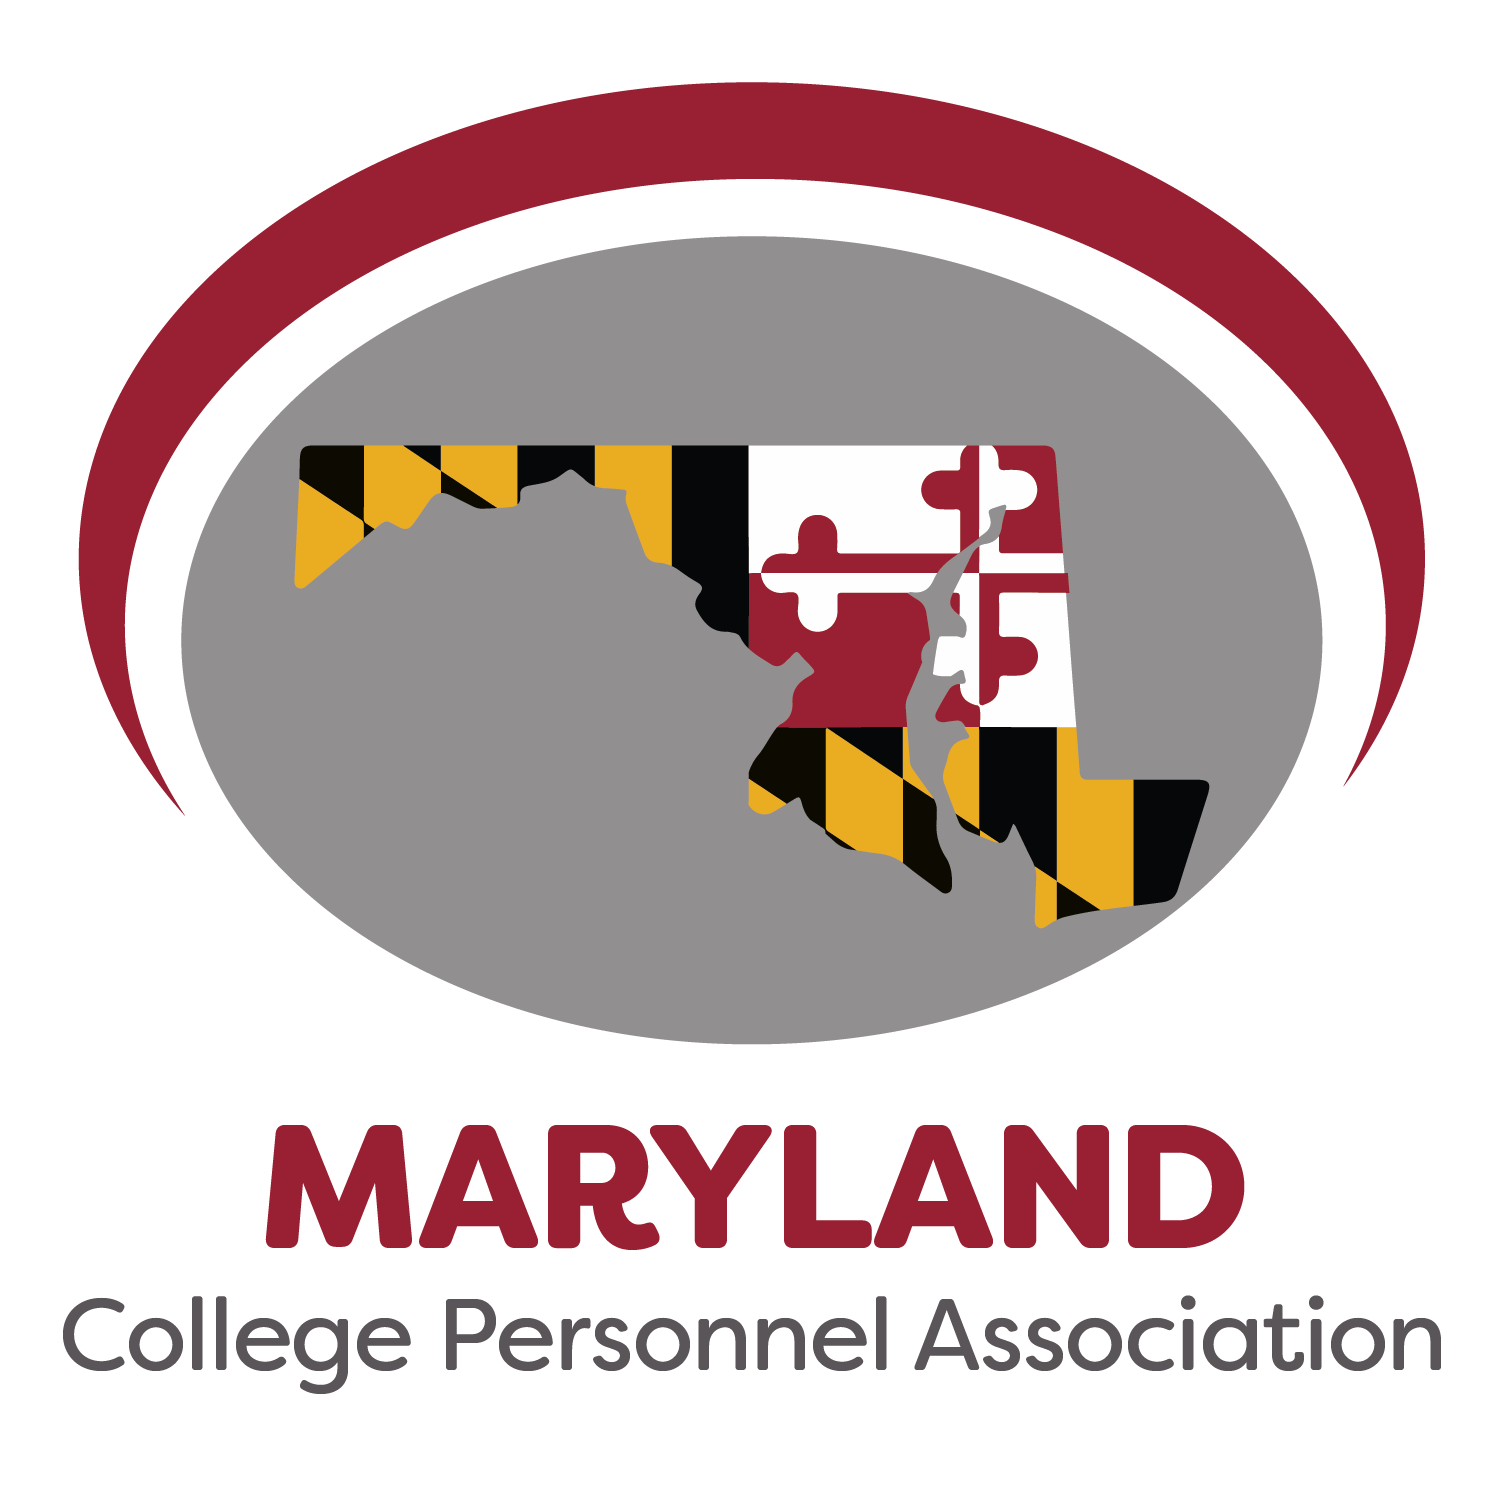 Maryland CPA logo featuring the MD flag inside of the state outline